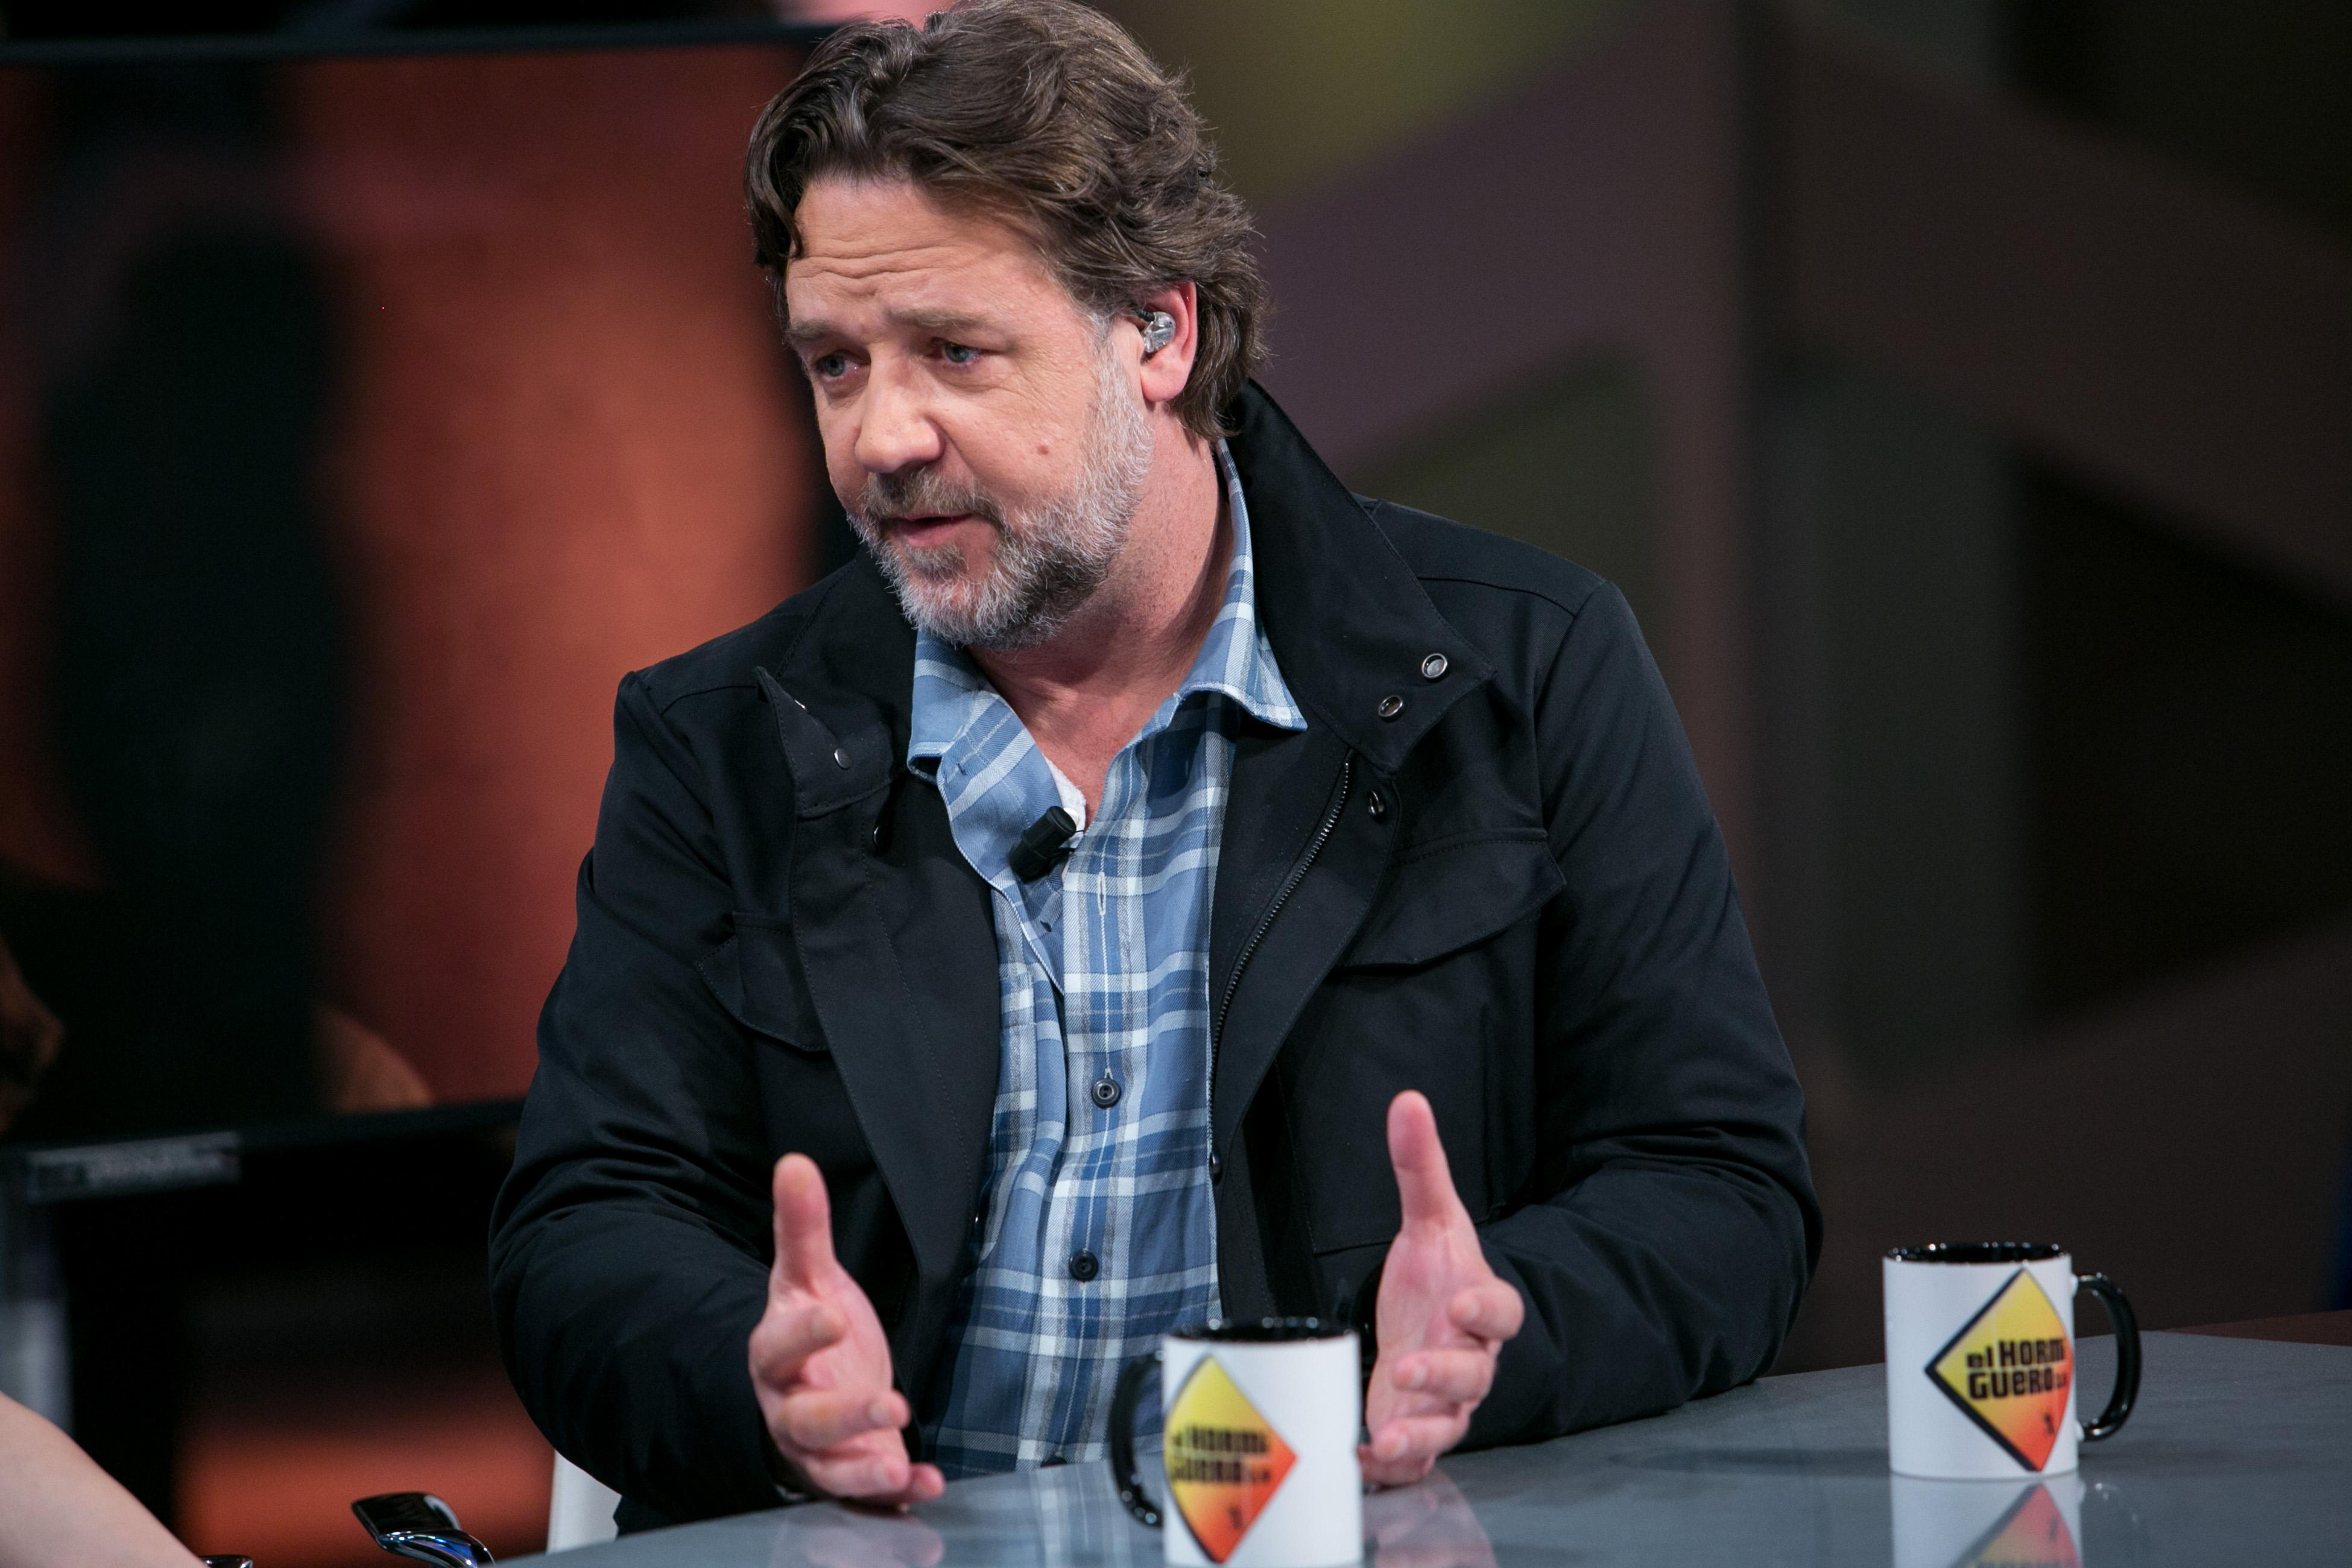 Russell Crowe: I explored Scientology